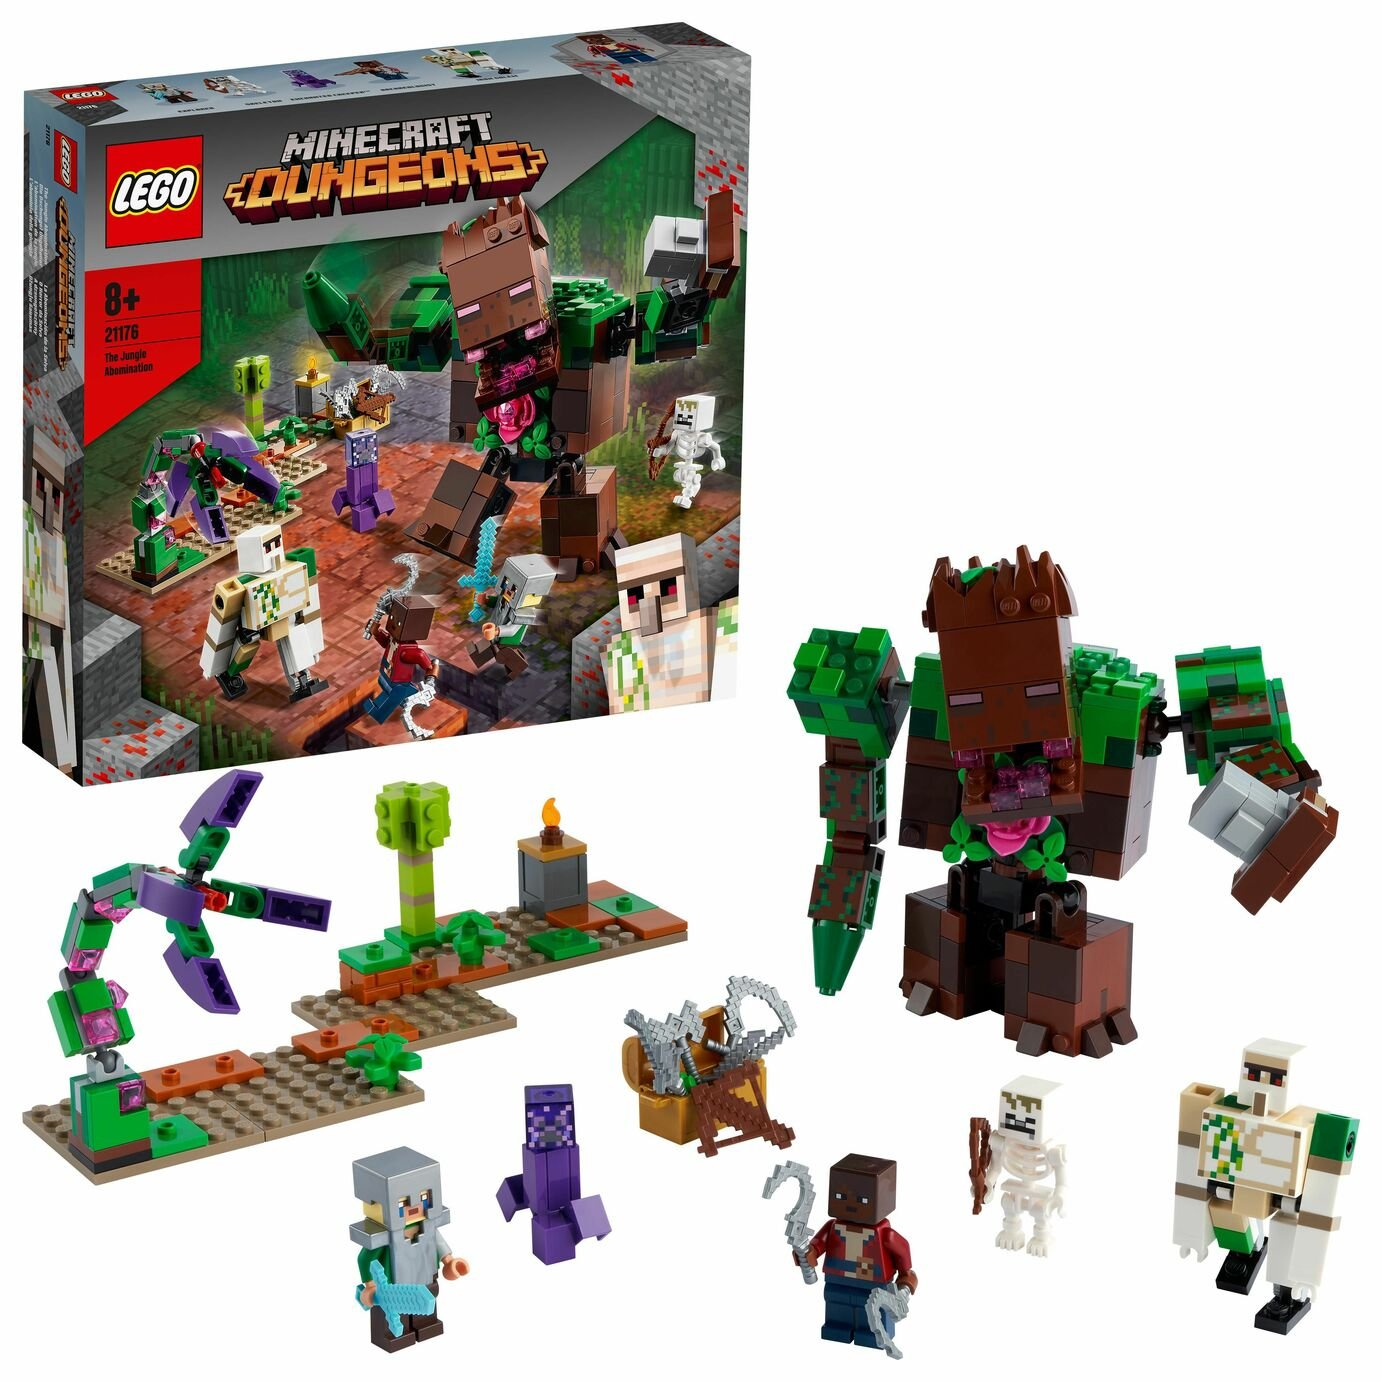 LEGO Minecraft Dungeons The Jungle Abomination Toy Set 21176